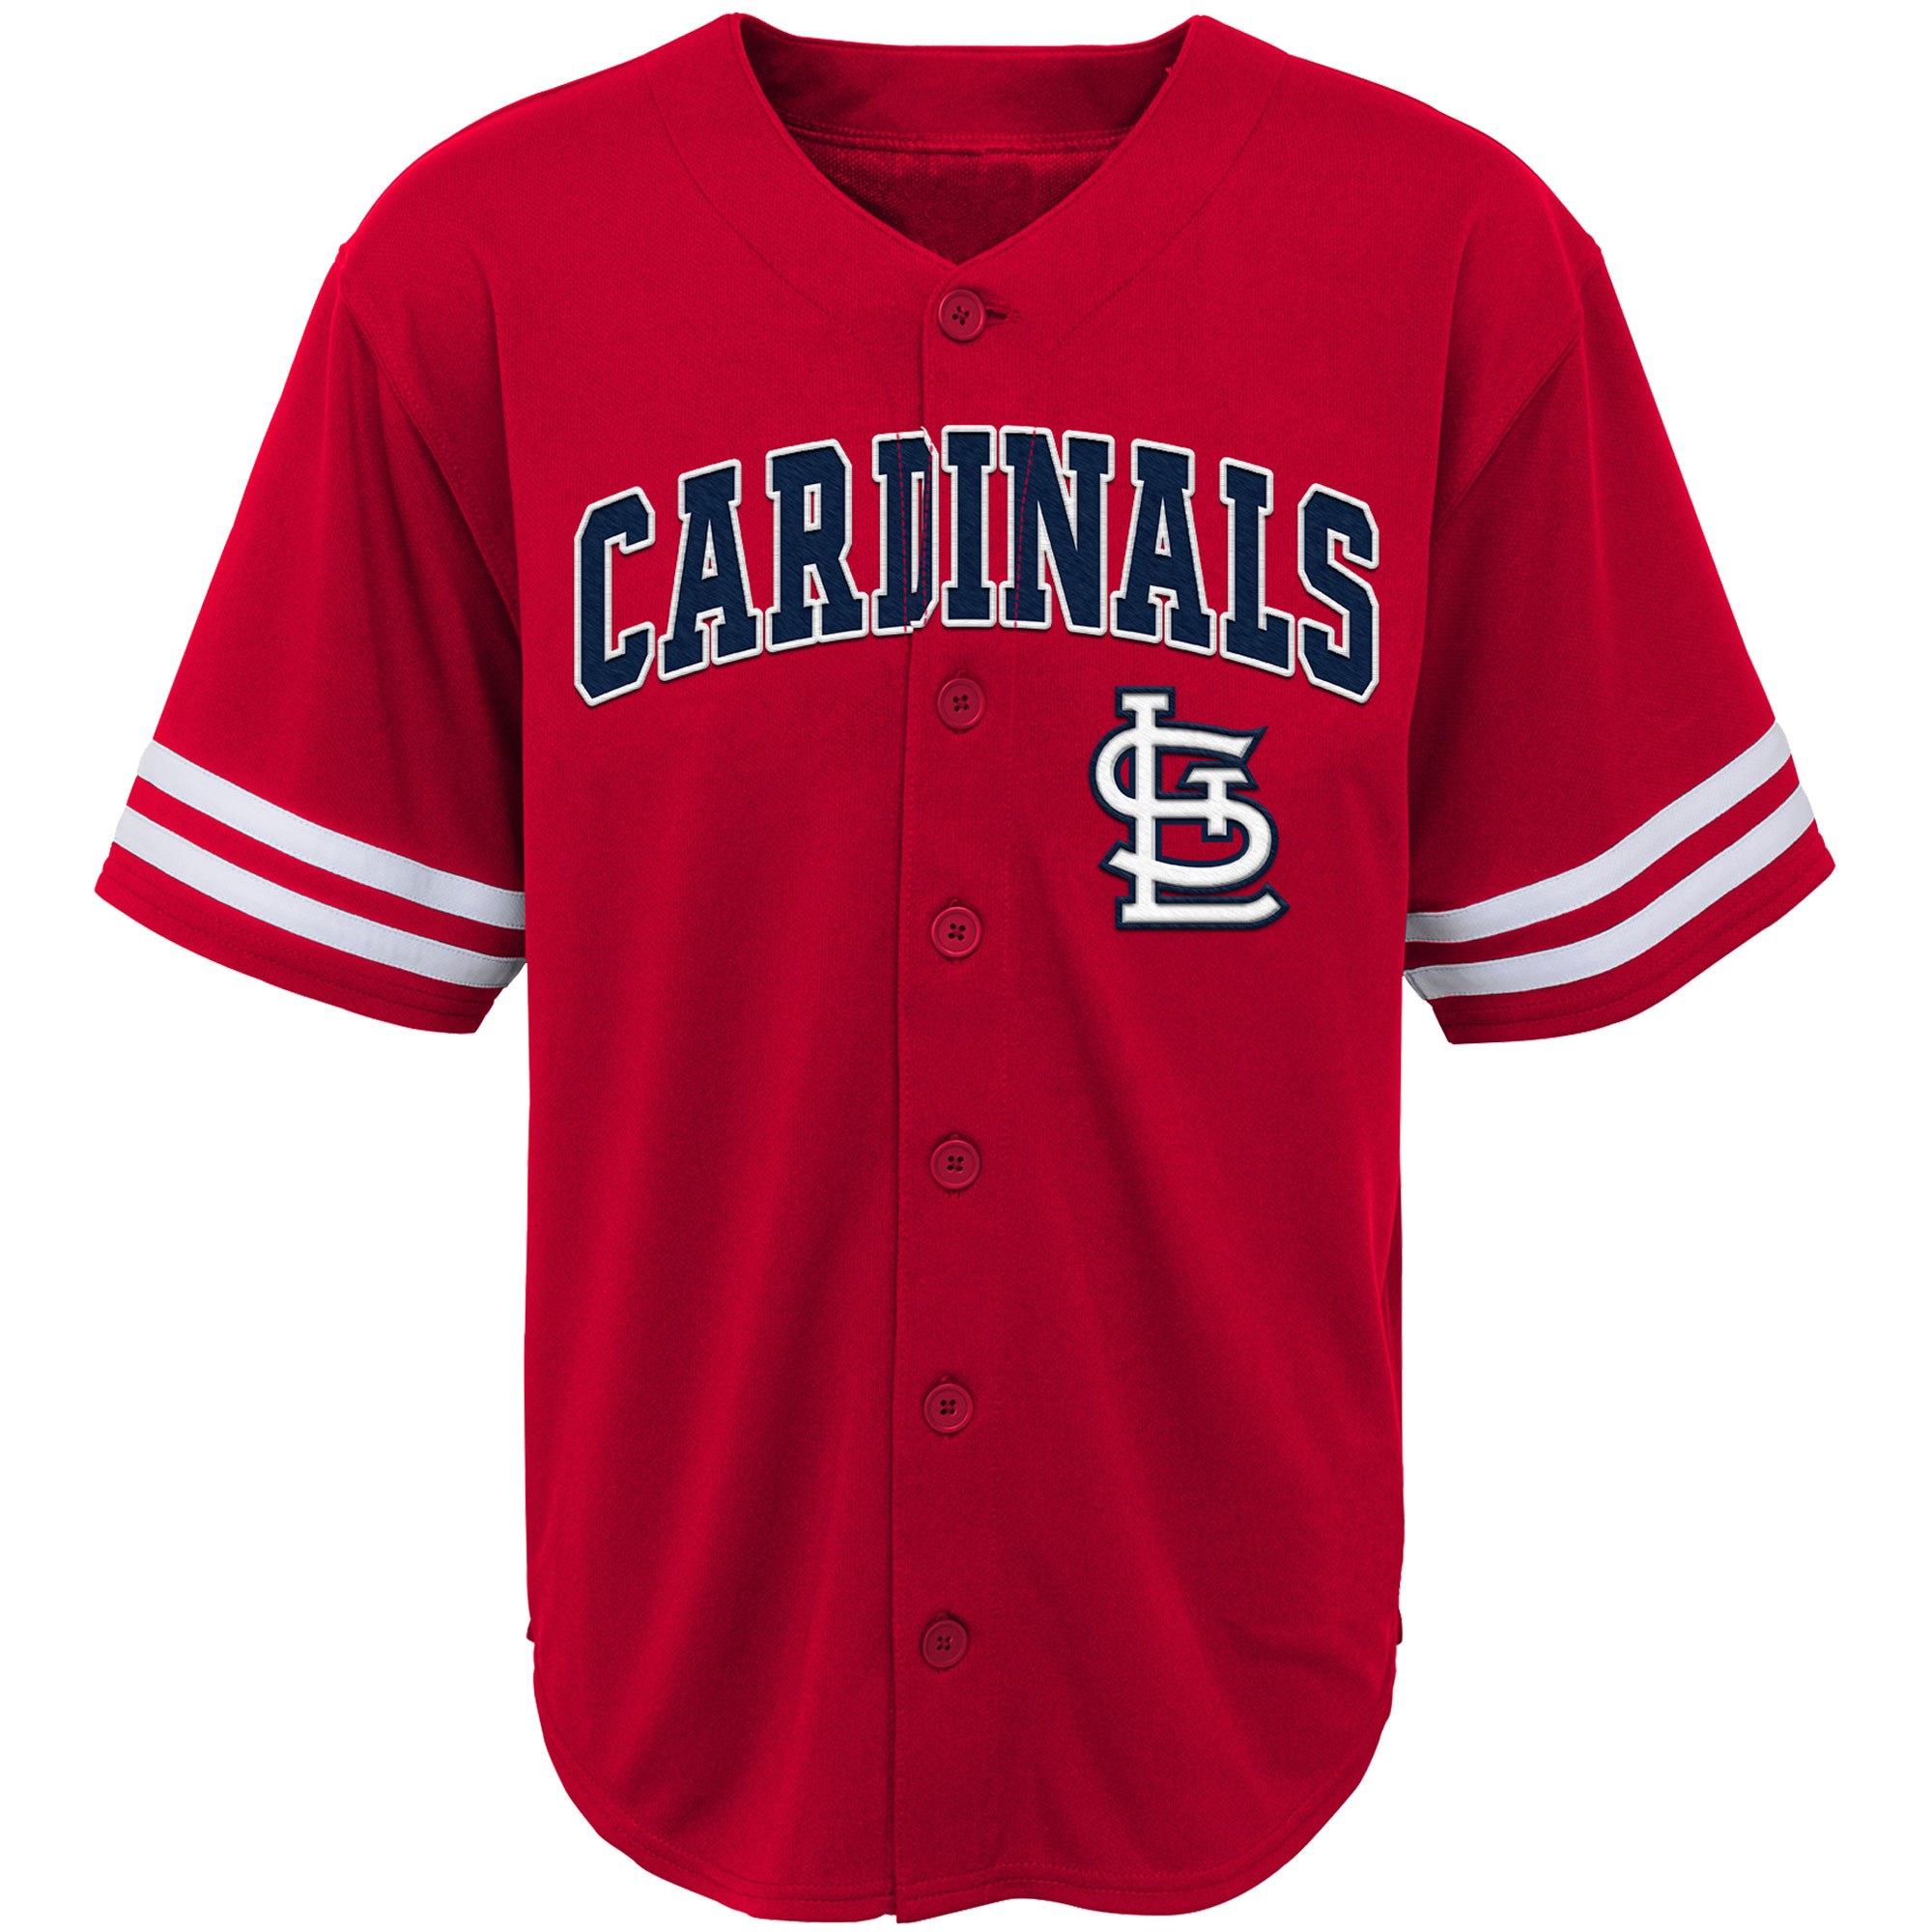 buy online 6a4c1 affde Youth Red St. Louis Cardinals Team Jersey